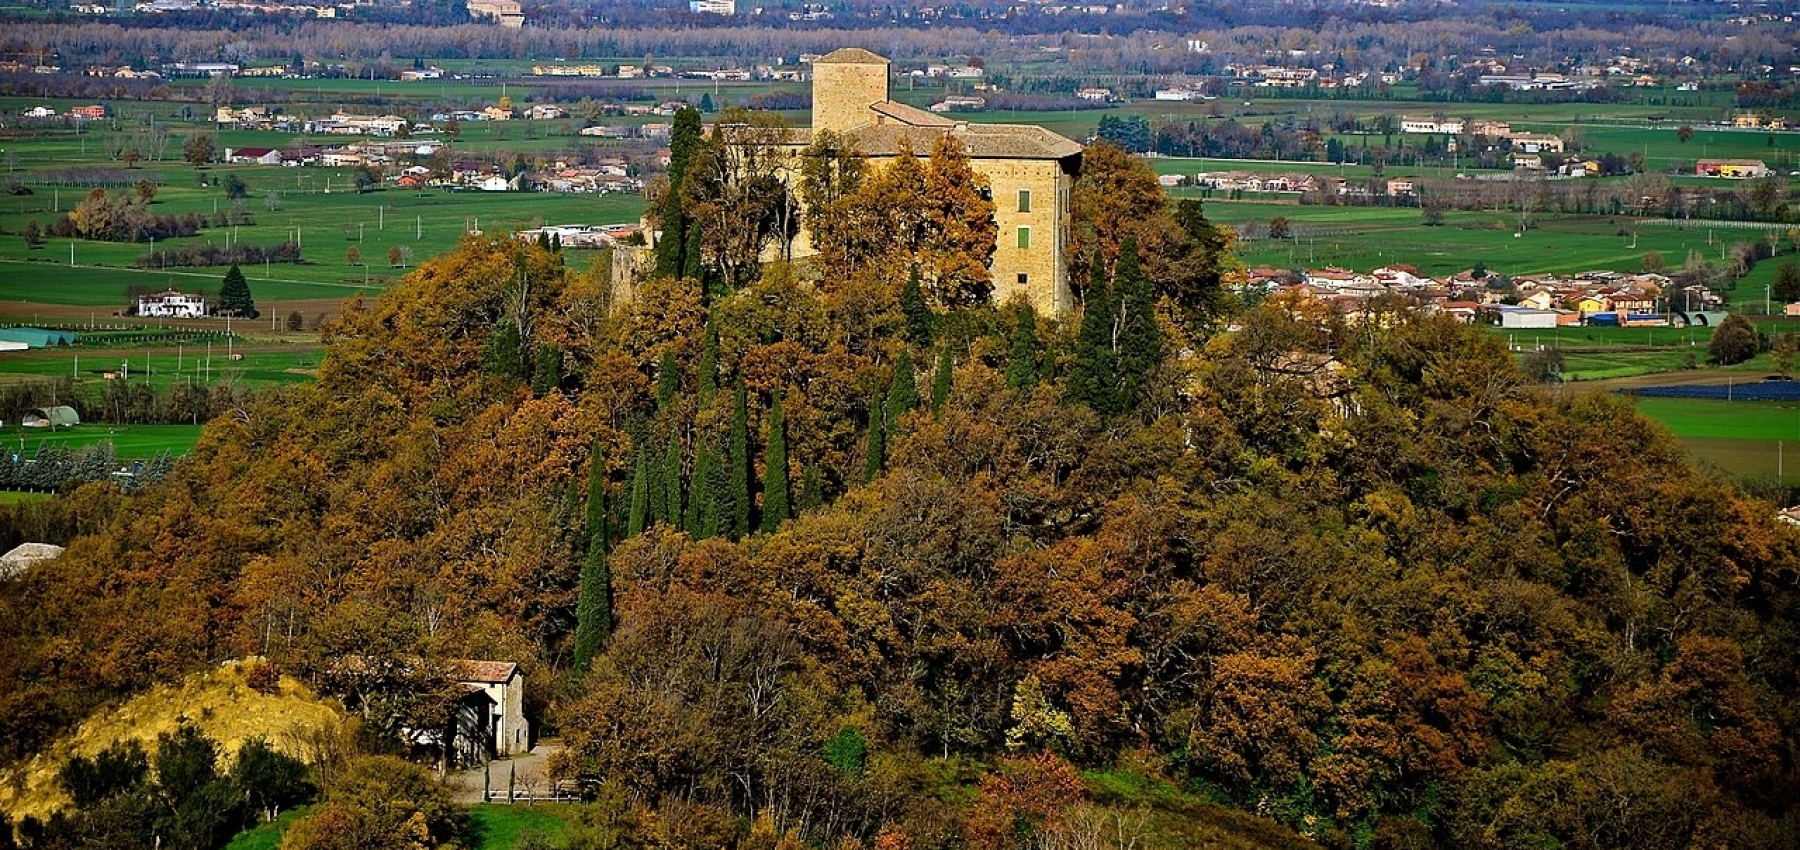 Itinerary to discover the Castles of Women in Emilia